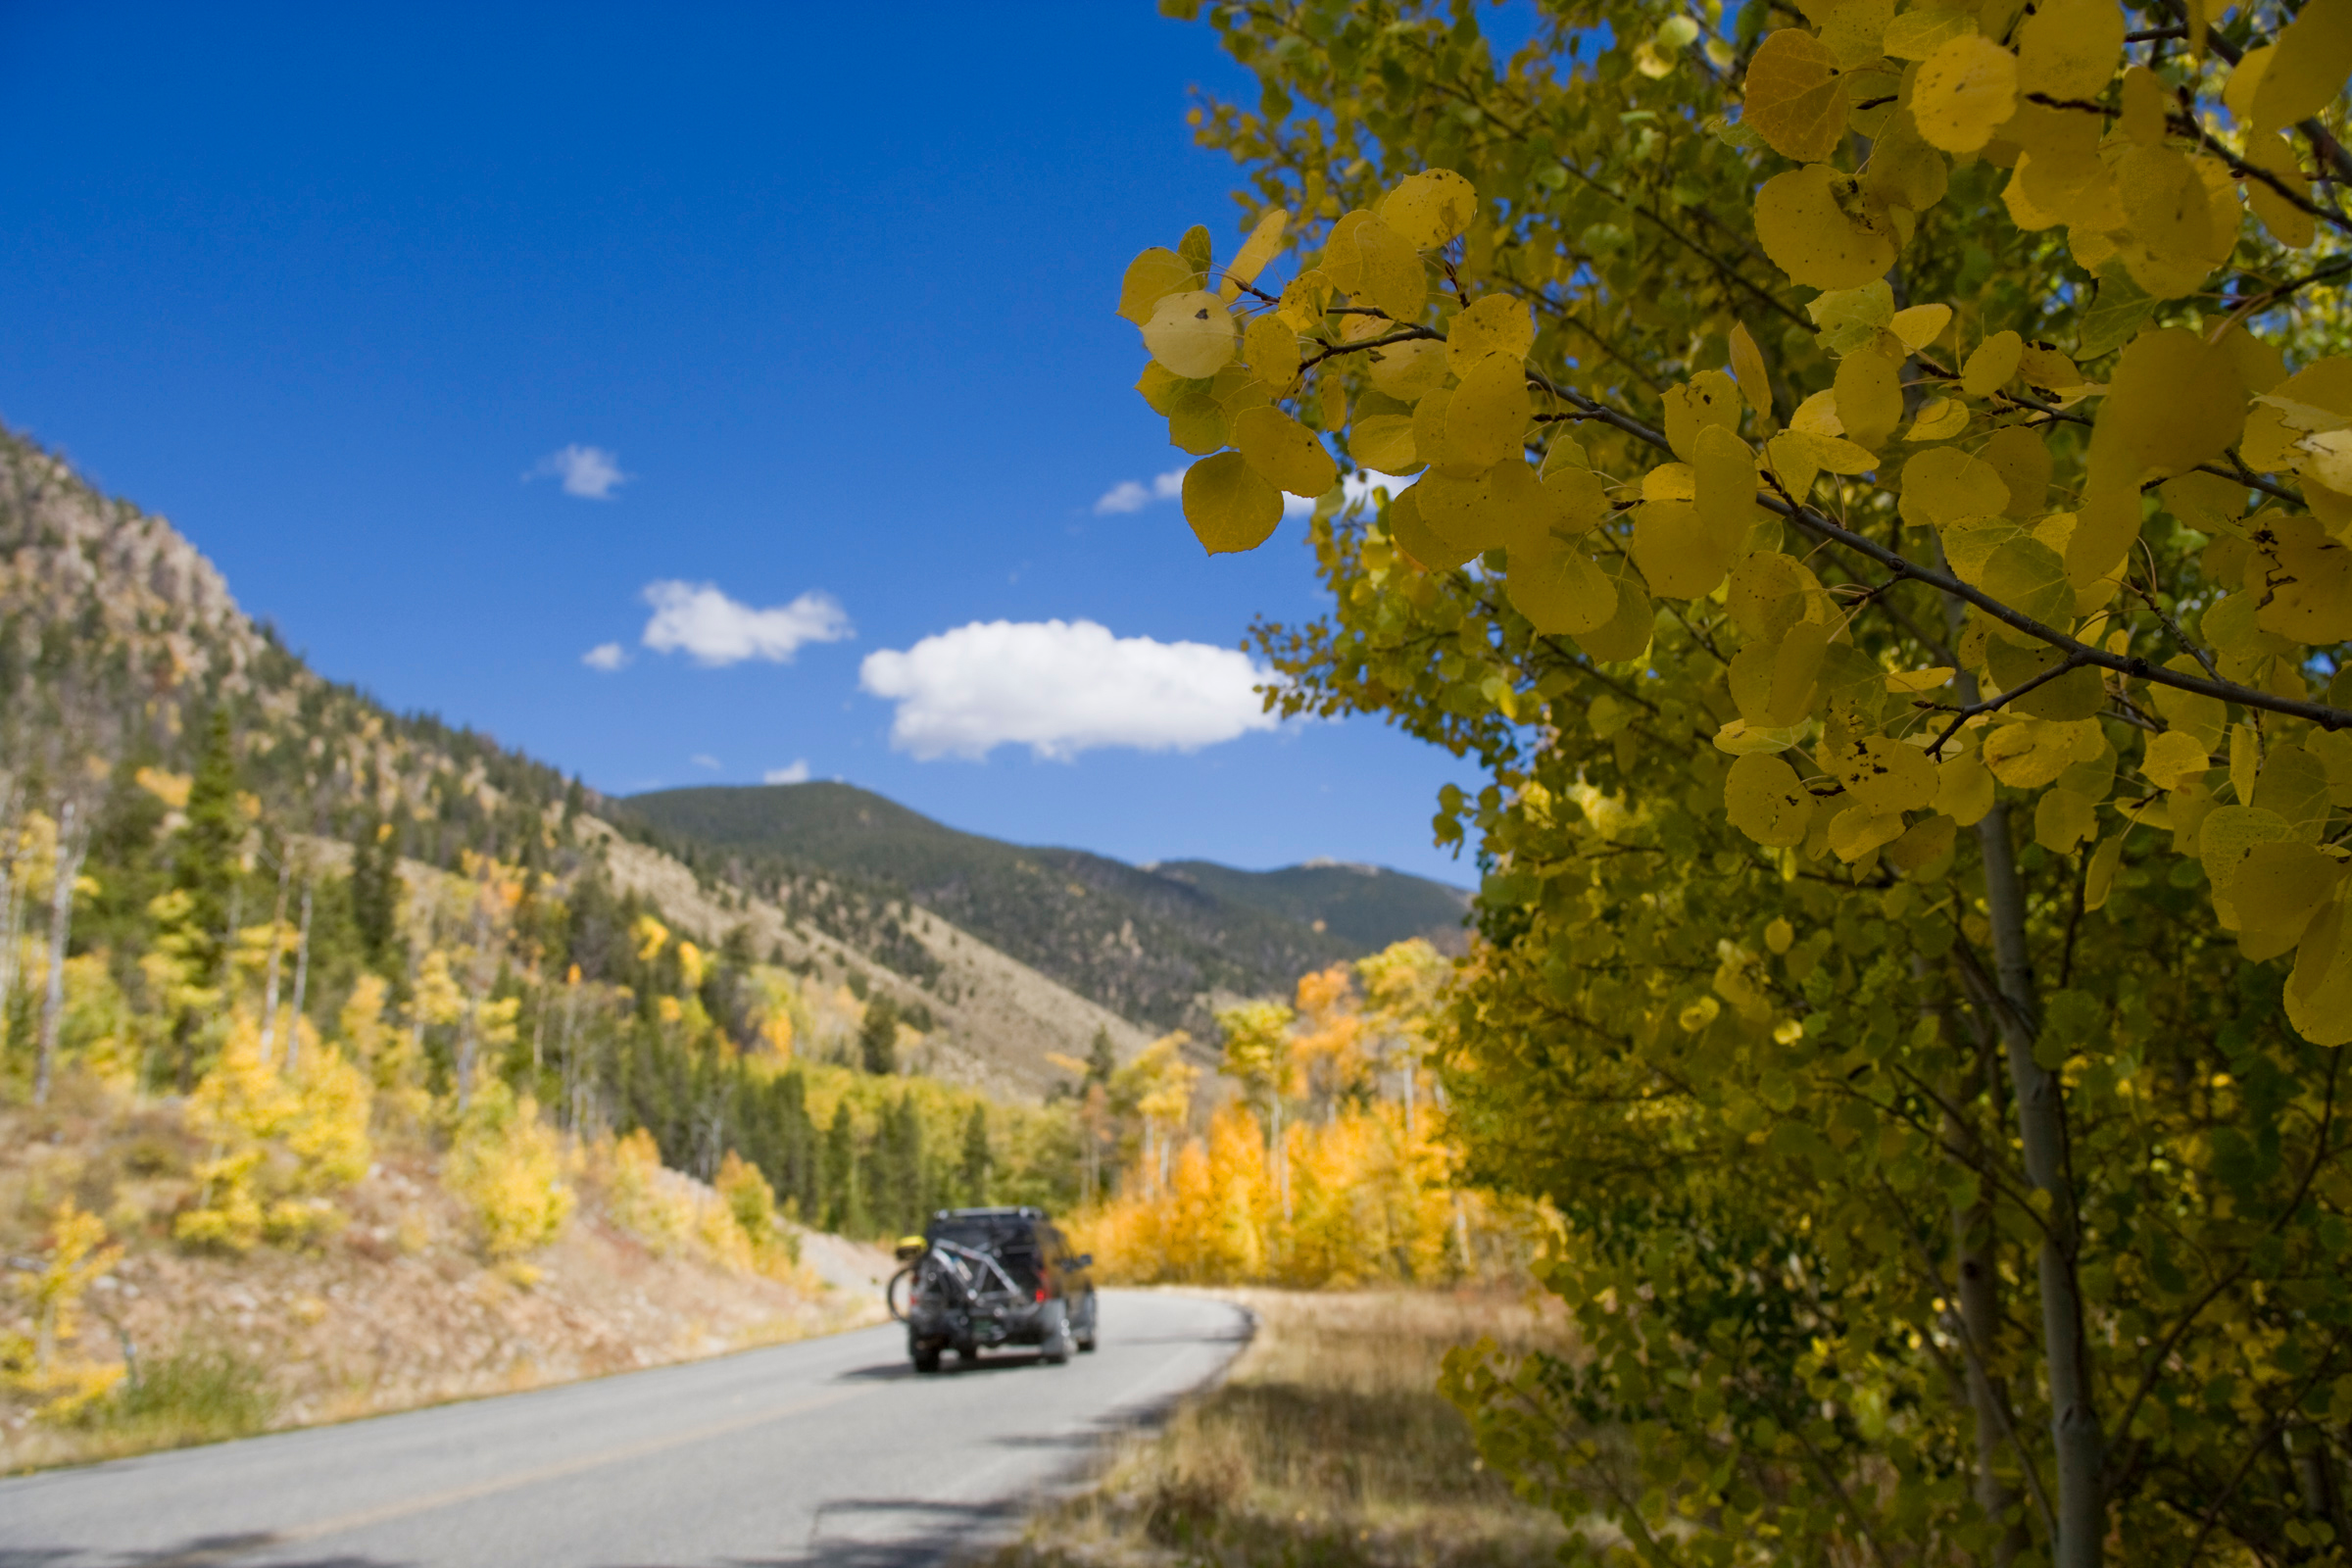 A motorist descends down Cottonwood Pass, a mountain road along a scenic view of autumn color of aspen trees in full bloom, near Buena Vista, Colo. on Tuesday, Sept. 29, 2009.